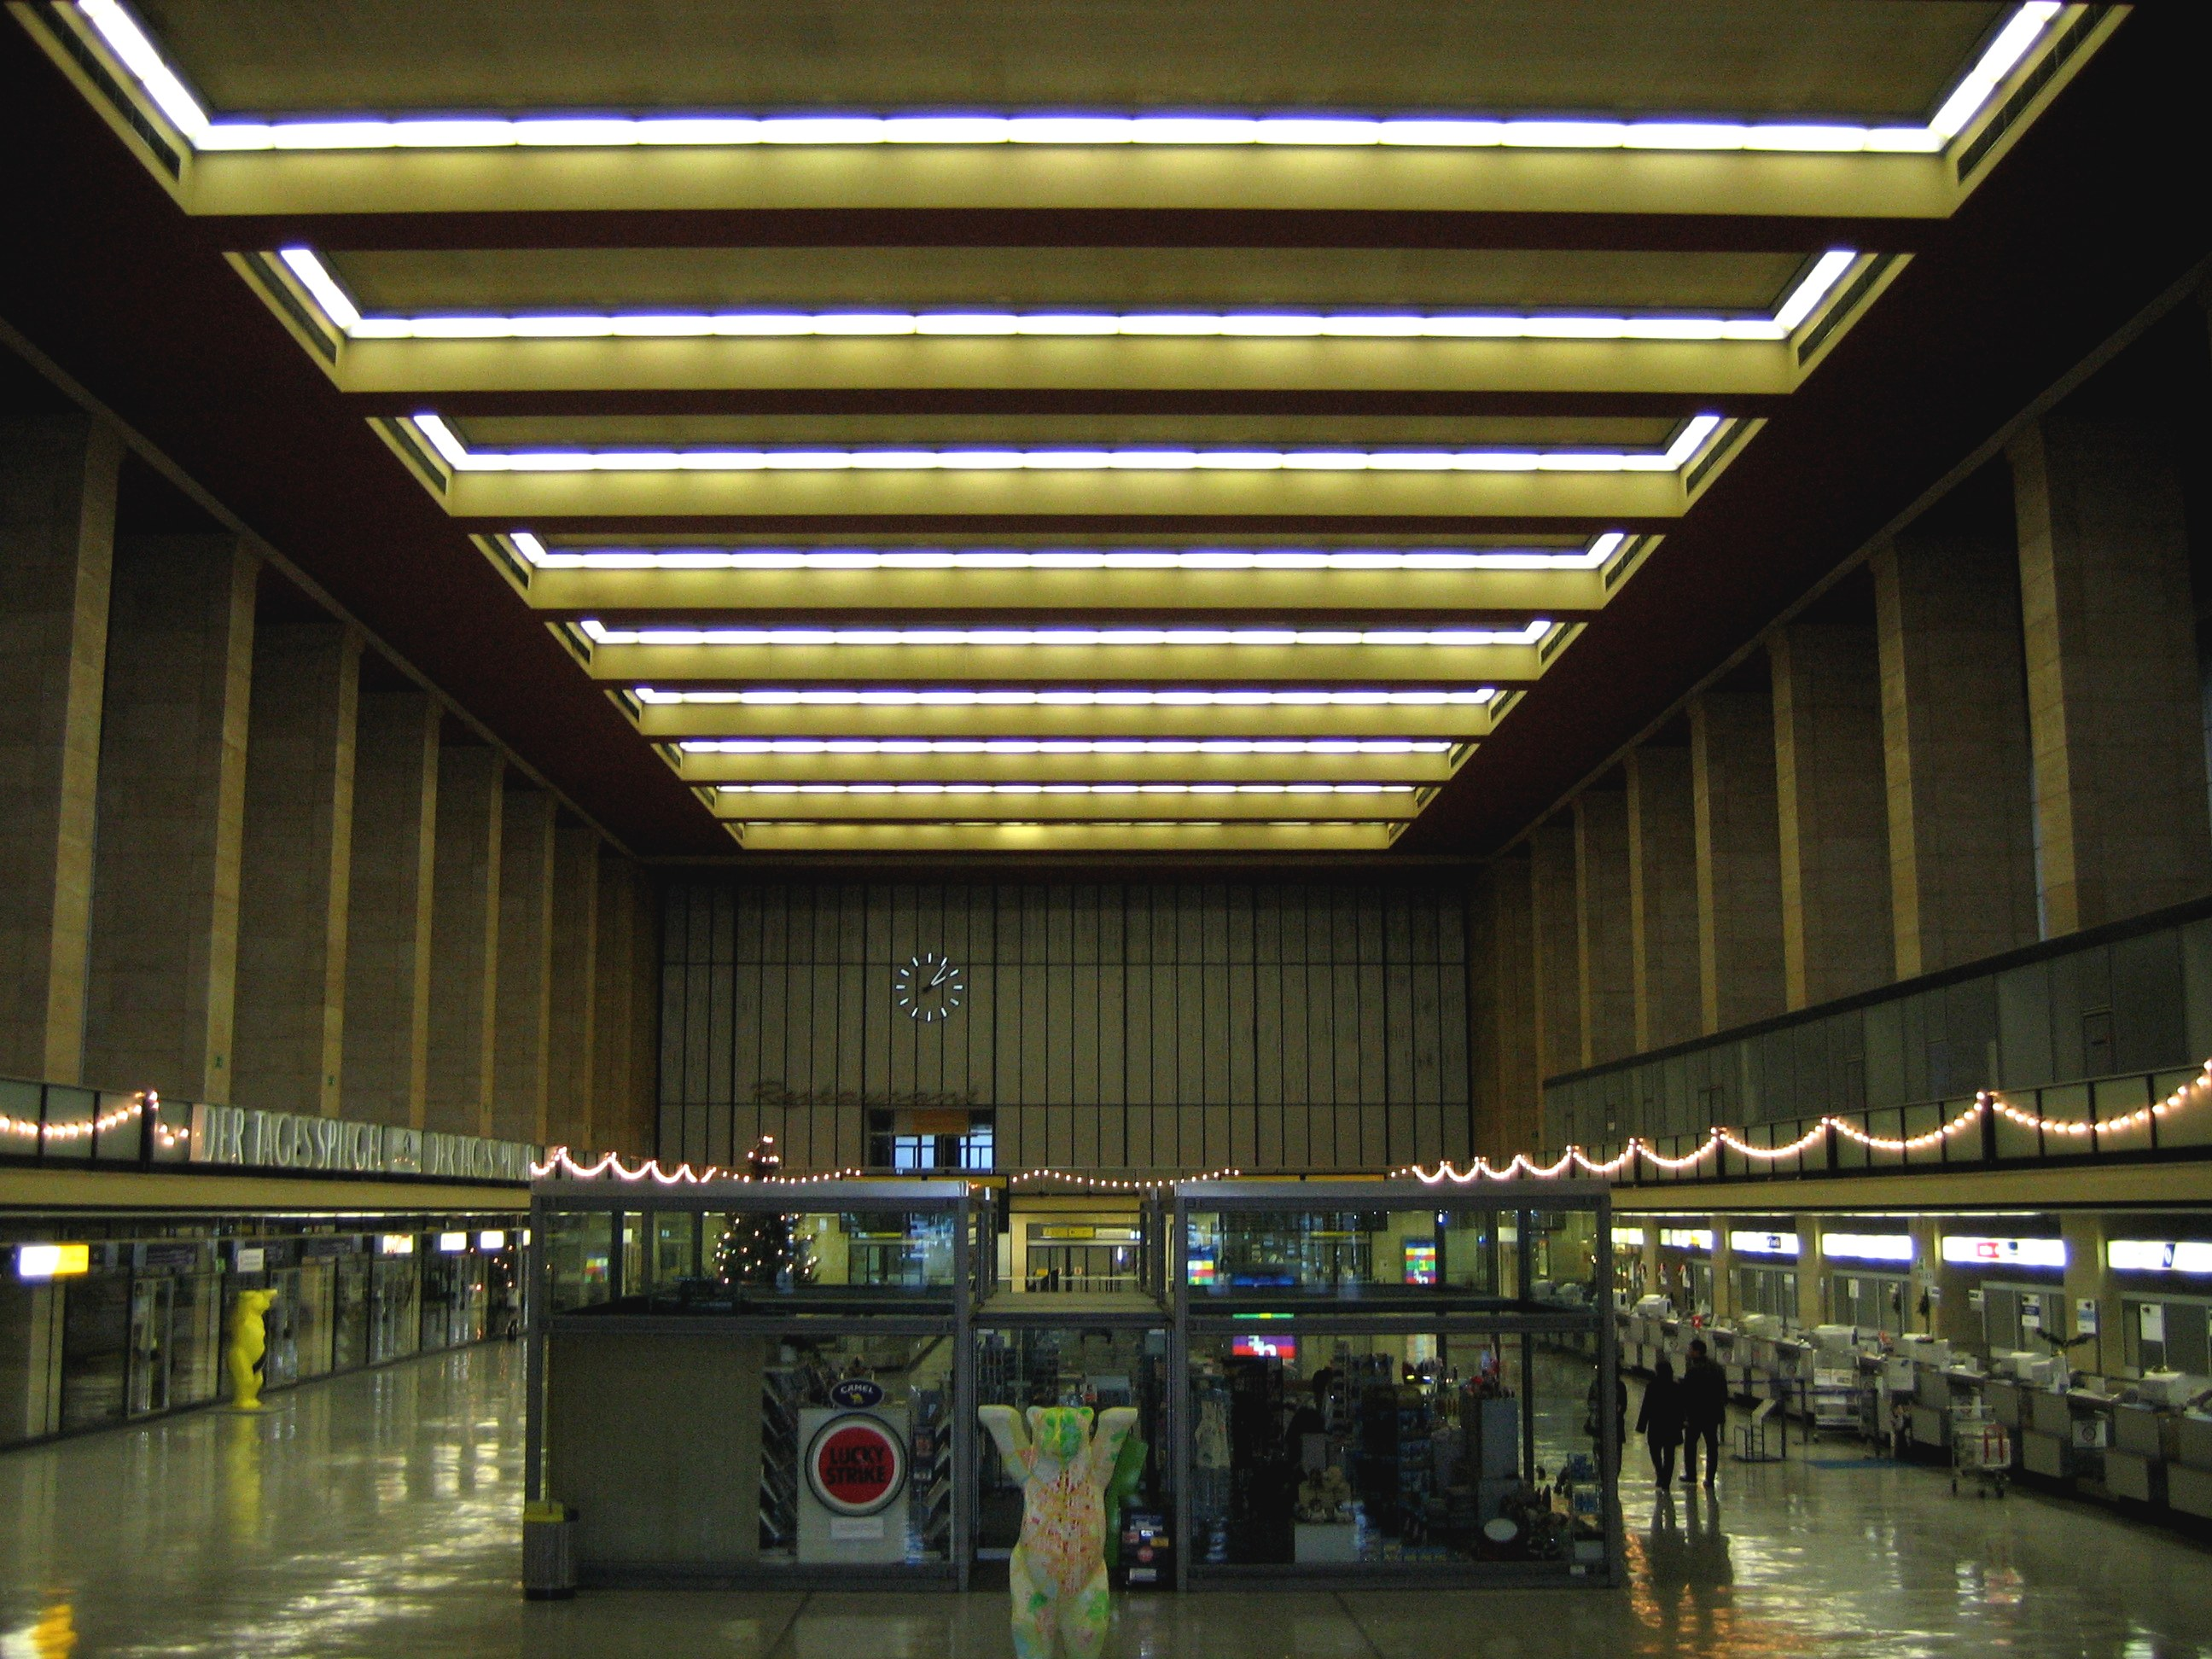 http://upload.wikimedia.org/wikipedia/commons/5/53/Airport_Berlin_Tempelhof_Inside.jpg